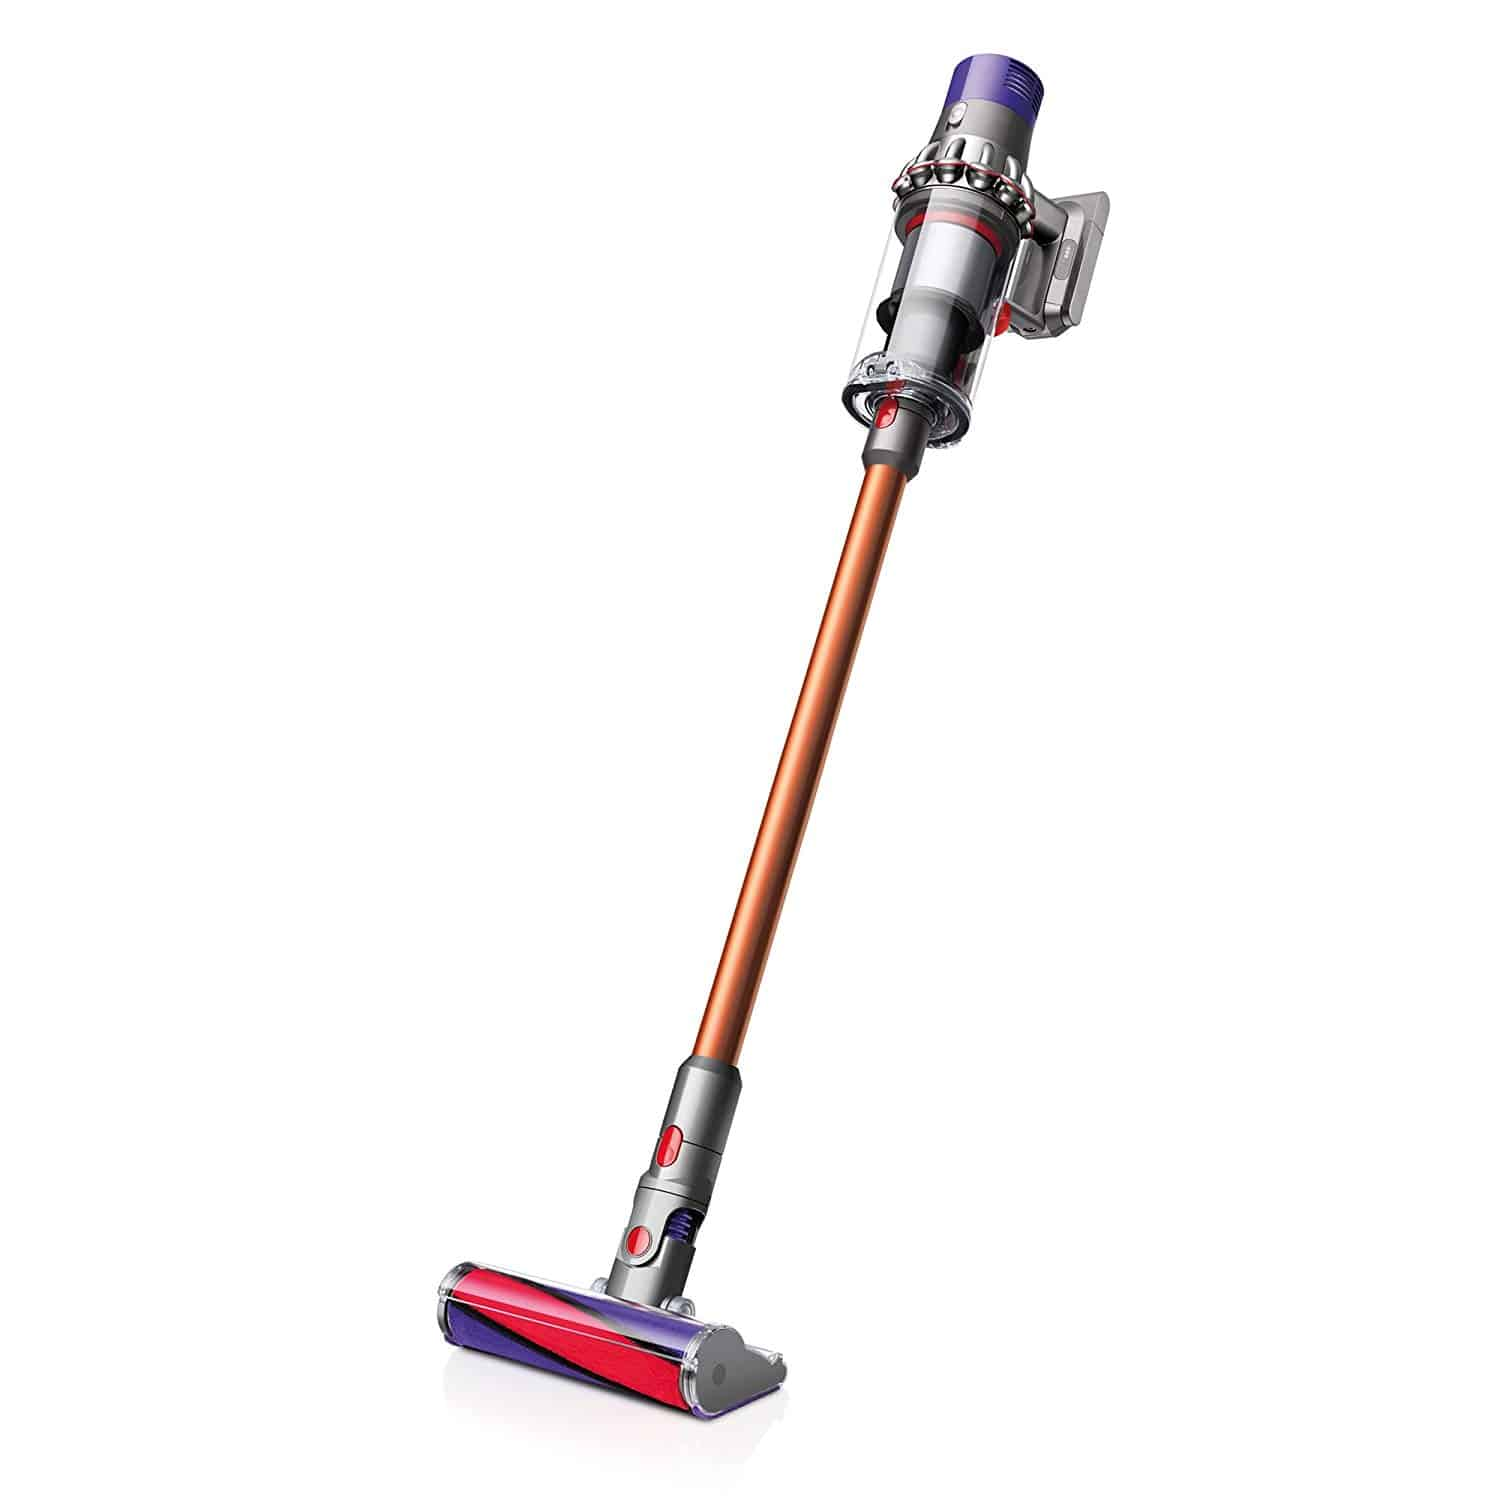 https://solidguides.com/wp-content/uploads/2018/10/Dyson-V10-Absolute.jpg